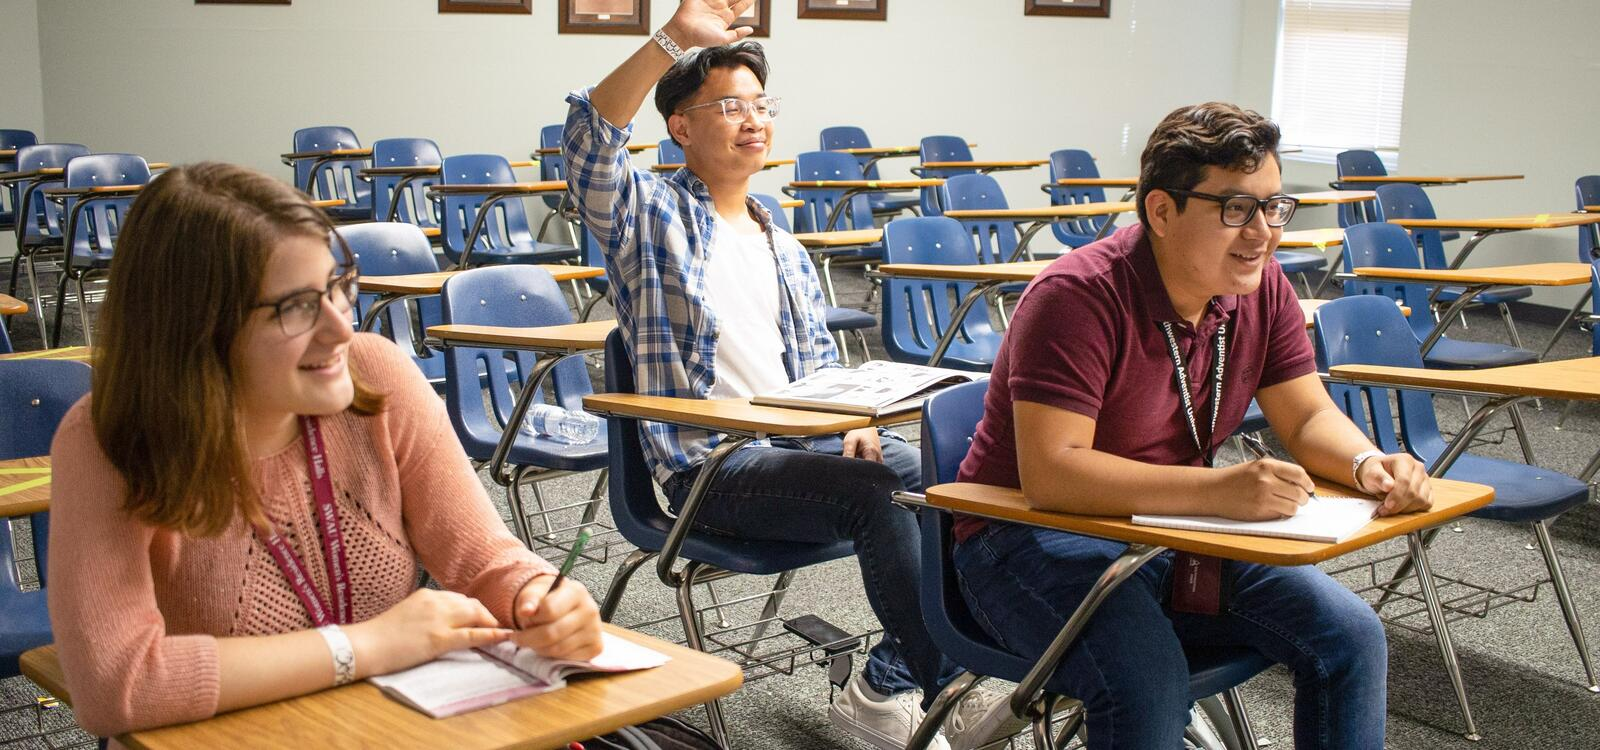 Three students sitting in a classroom facing the front as the listen attentively and take notes. One student is raising his hand to ask a question.